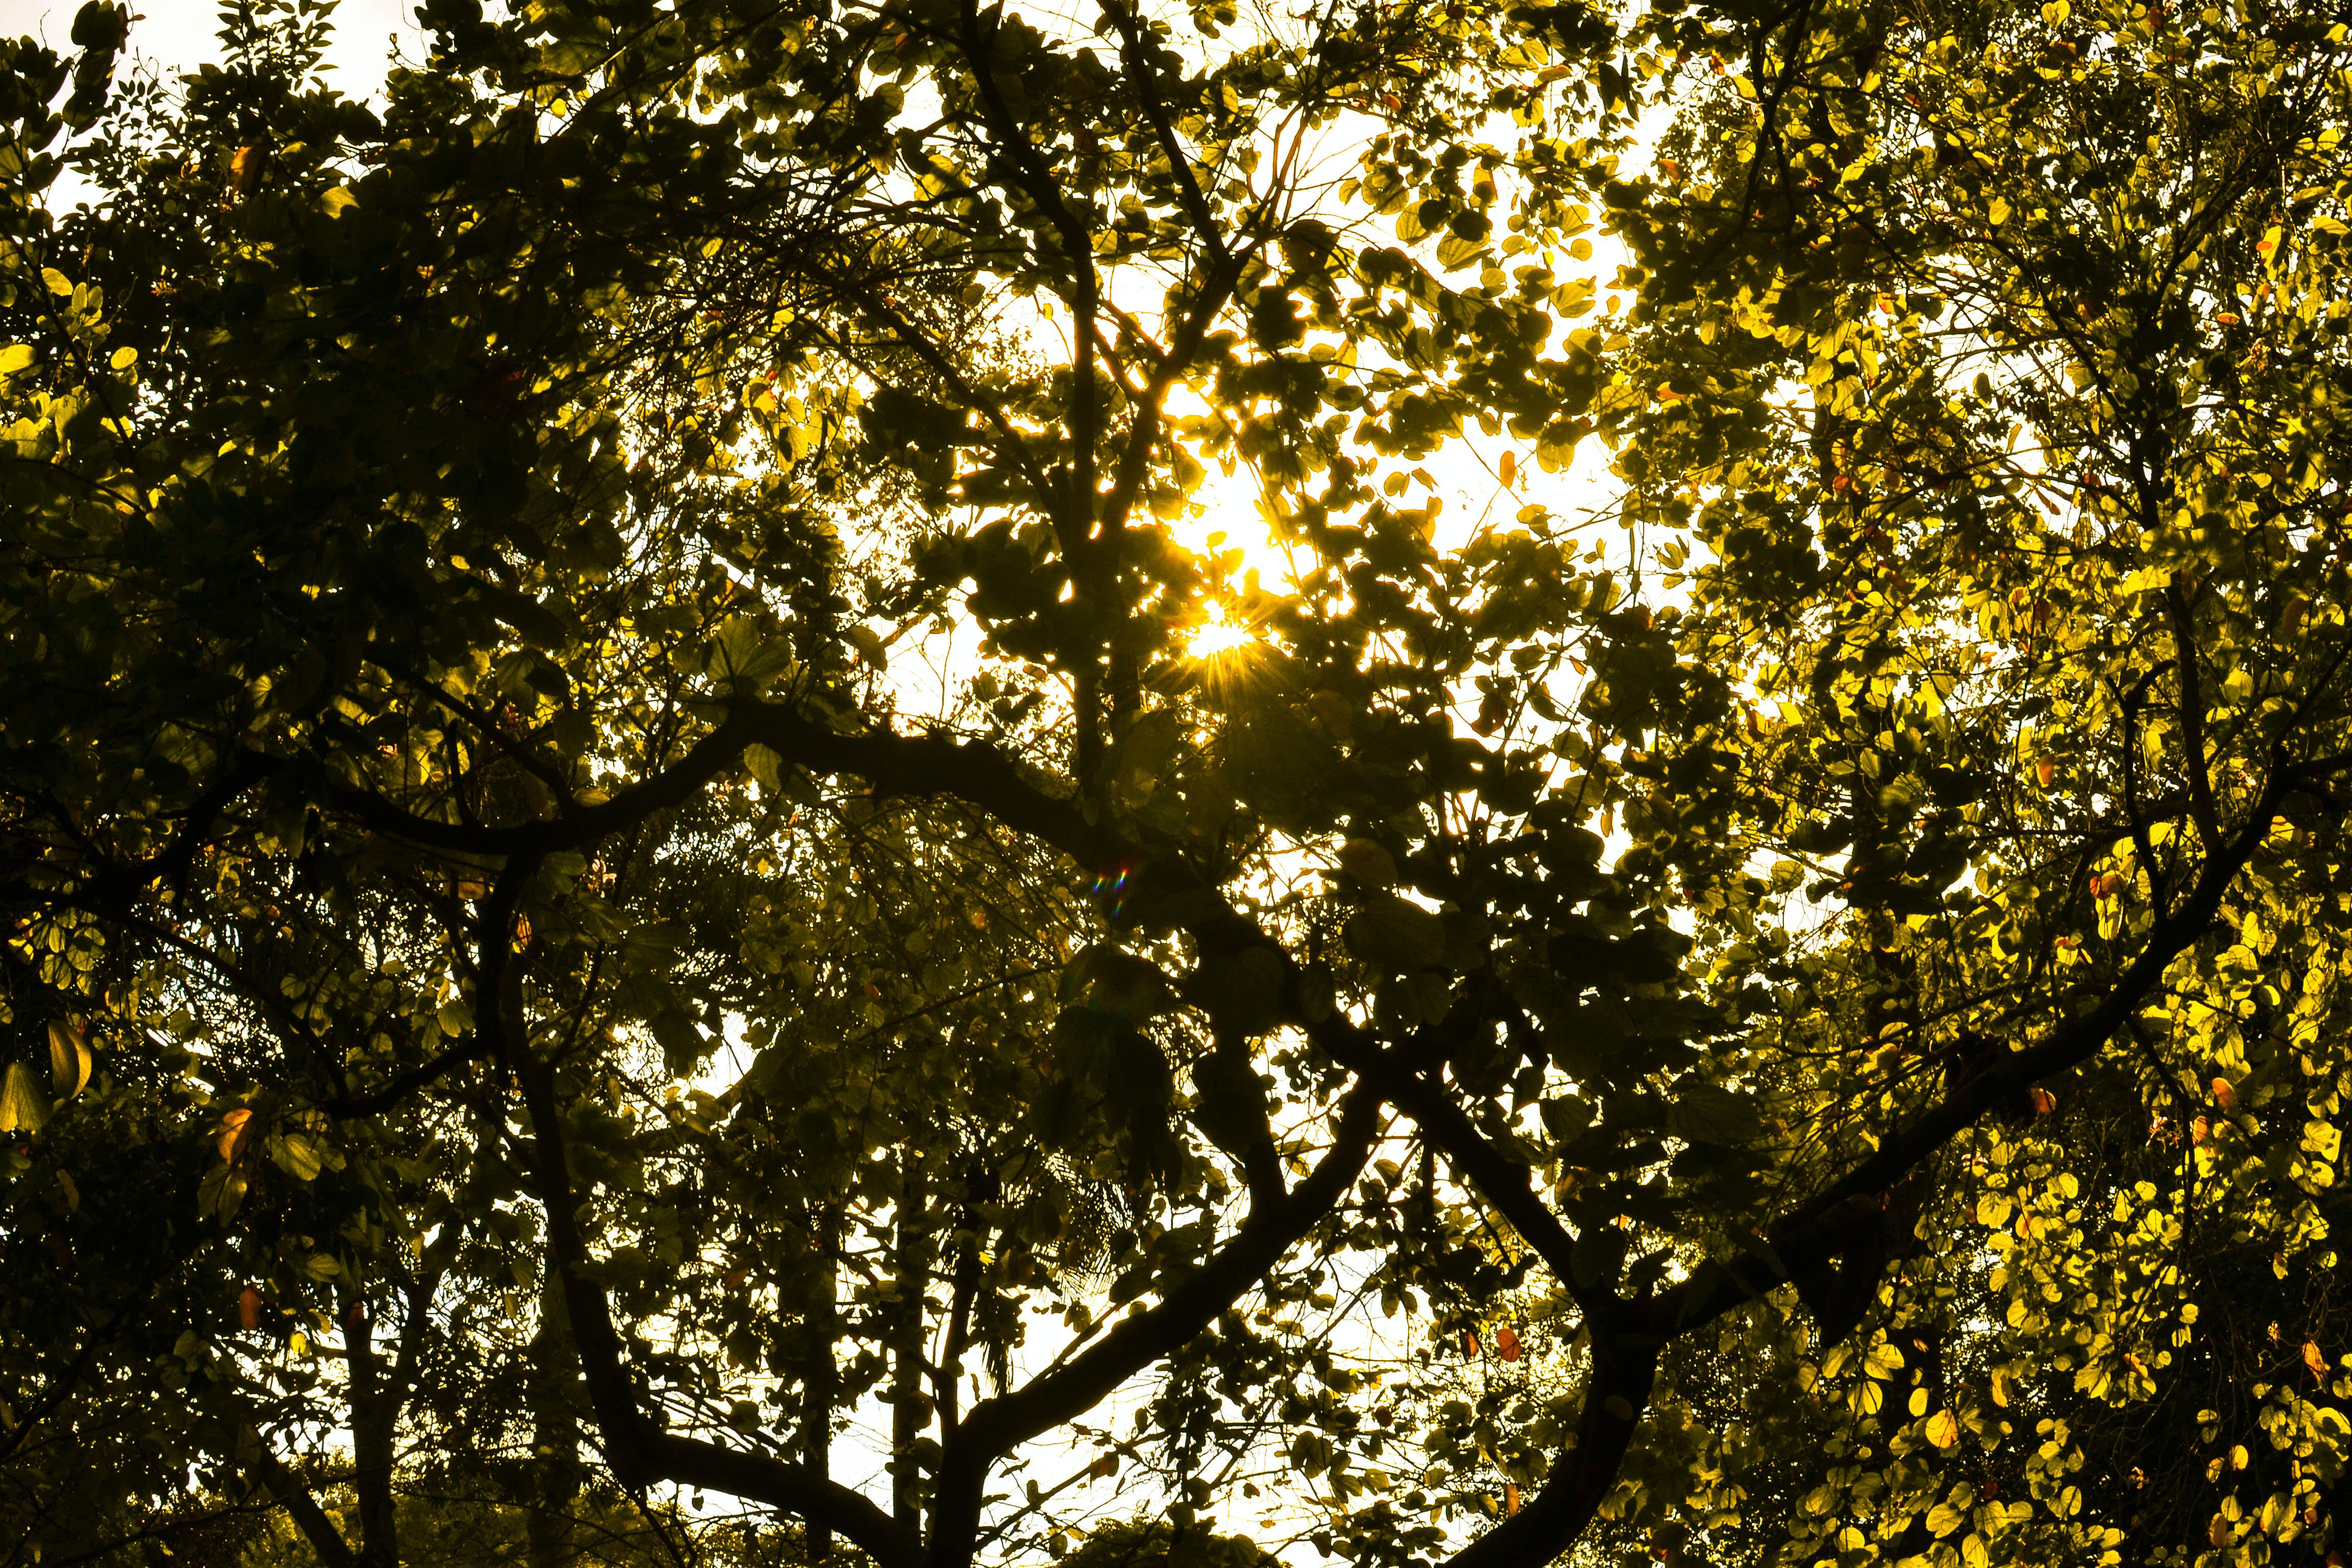 Sunshine Through Green Leafed Tree